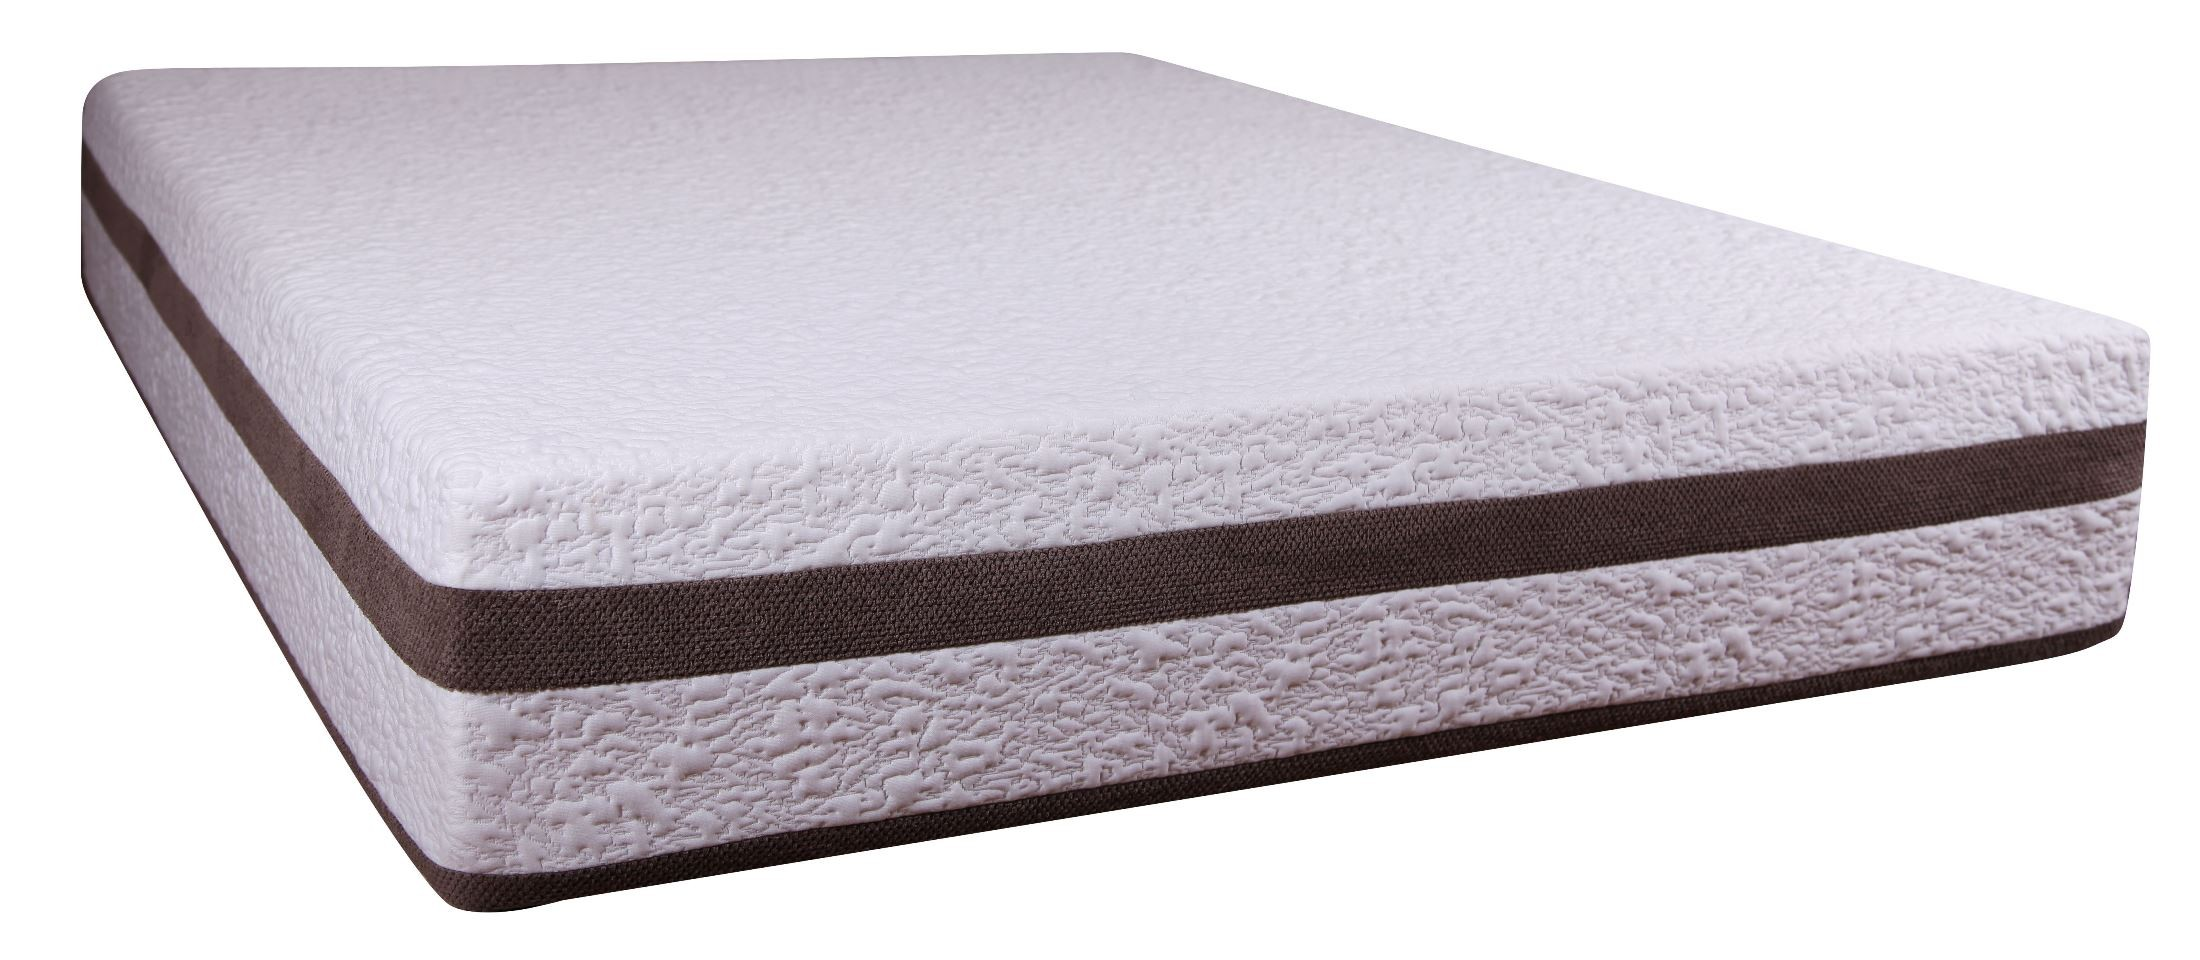 Nova 11 5 Memory Foam Queen Size Mattress From Klaussner Novaqqmat Coleman Furniture